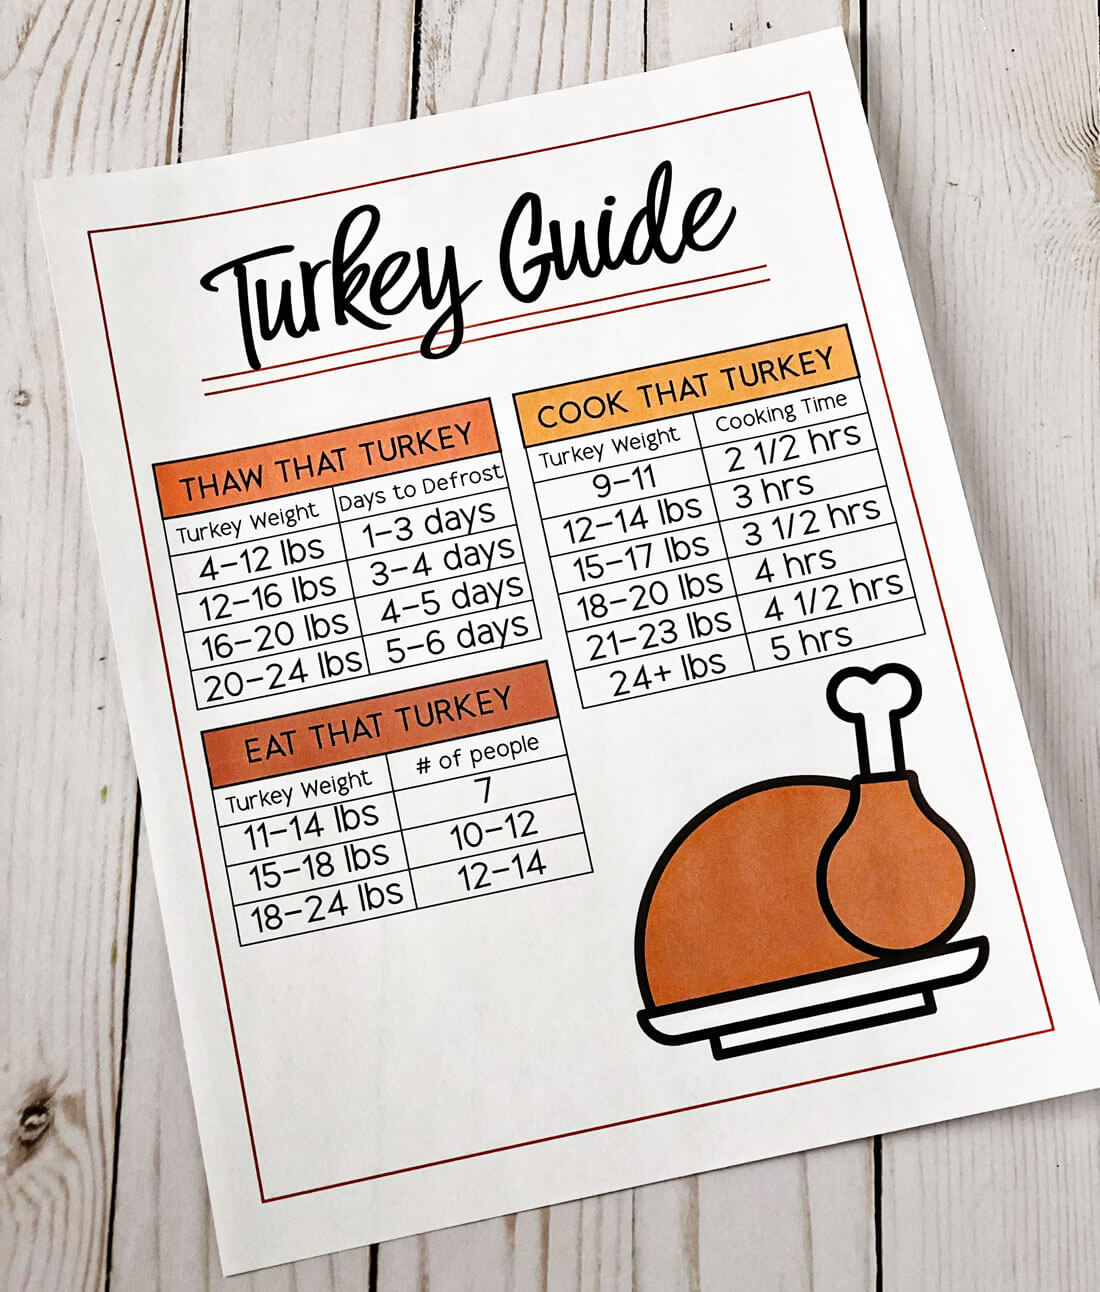 Does Your Turkey Have Salmonella? Assume It Does